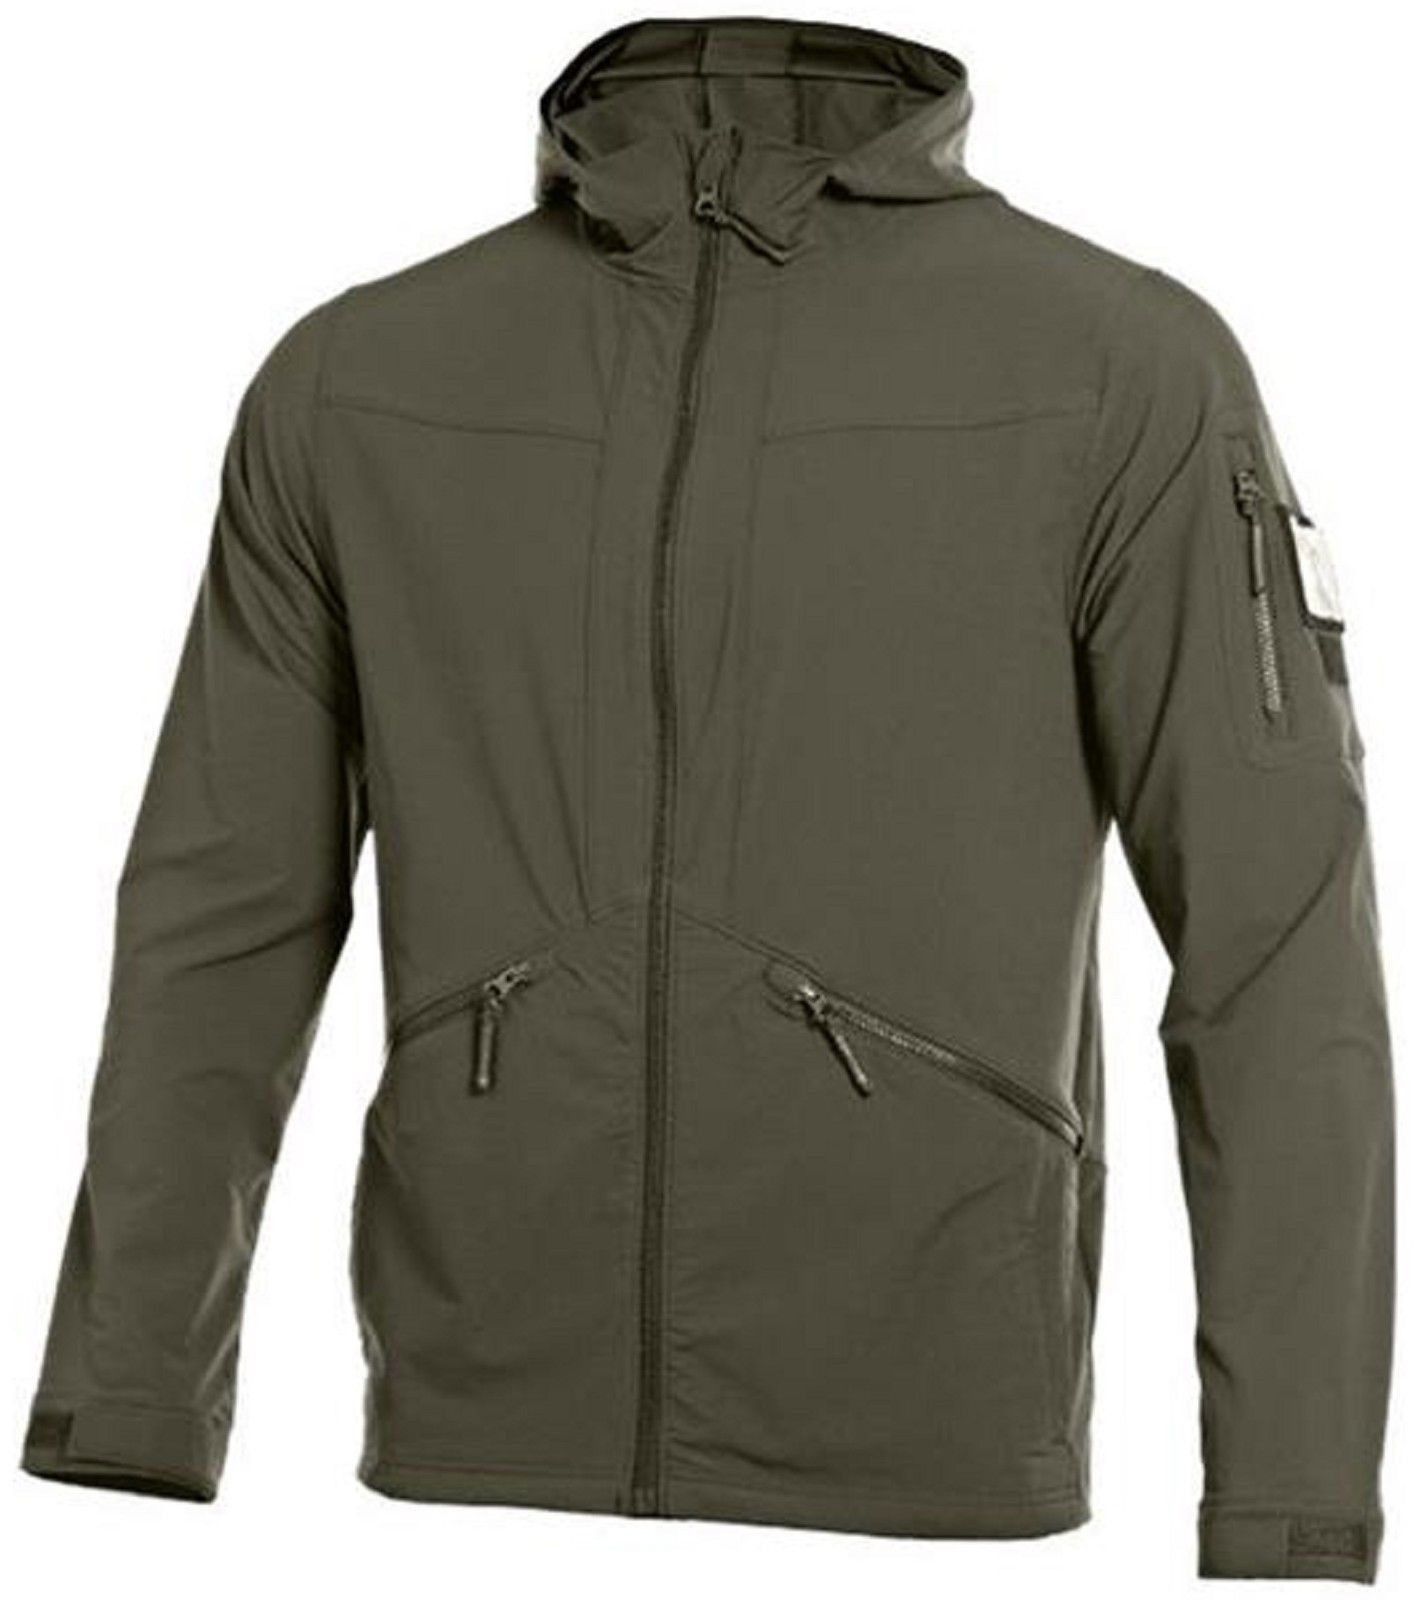 Under Armour Tactical Softshell Jacket 2 0 Mens